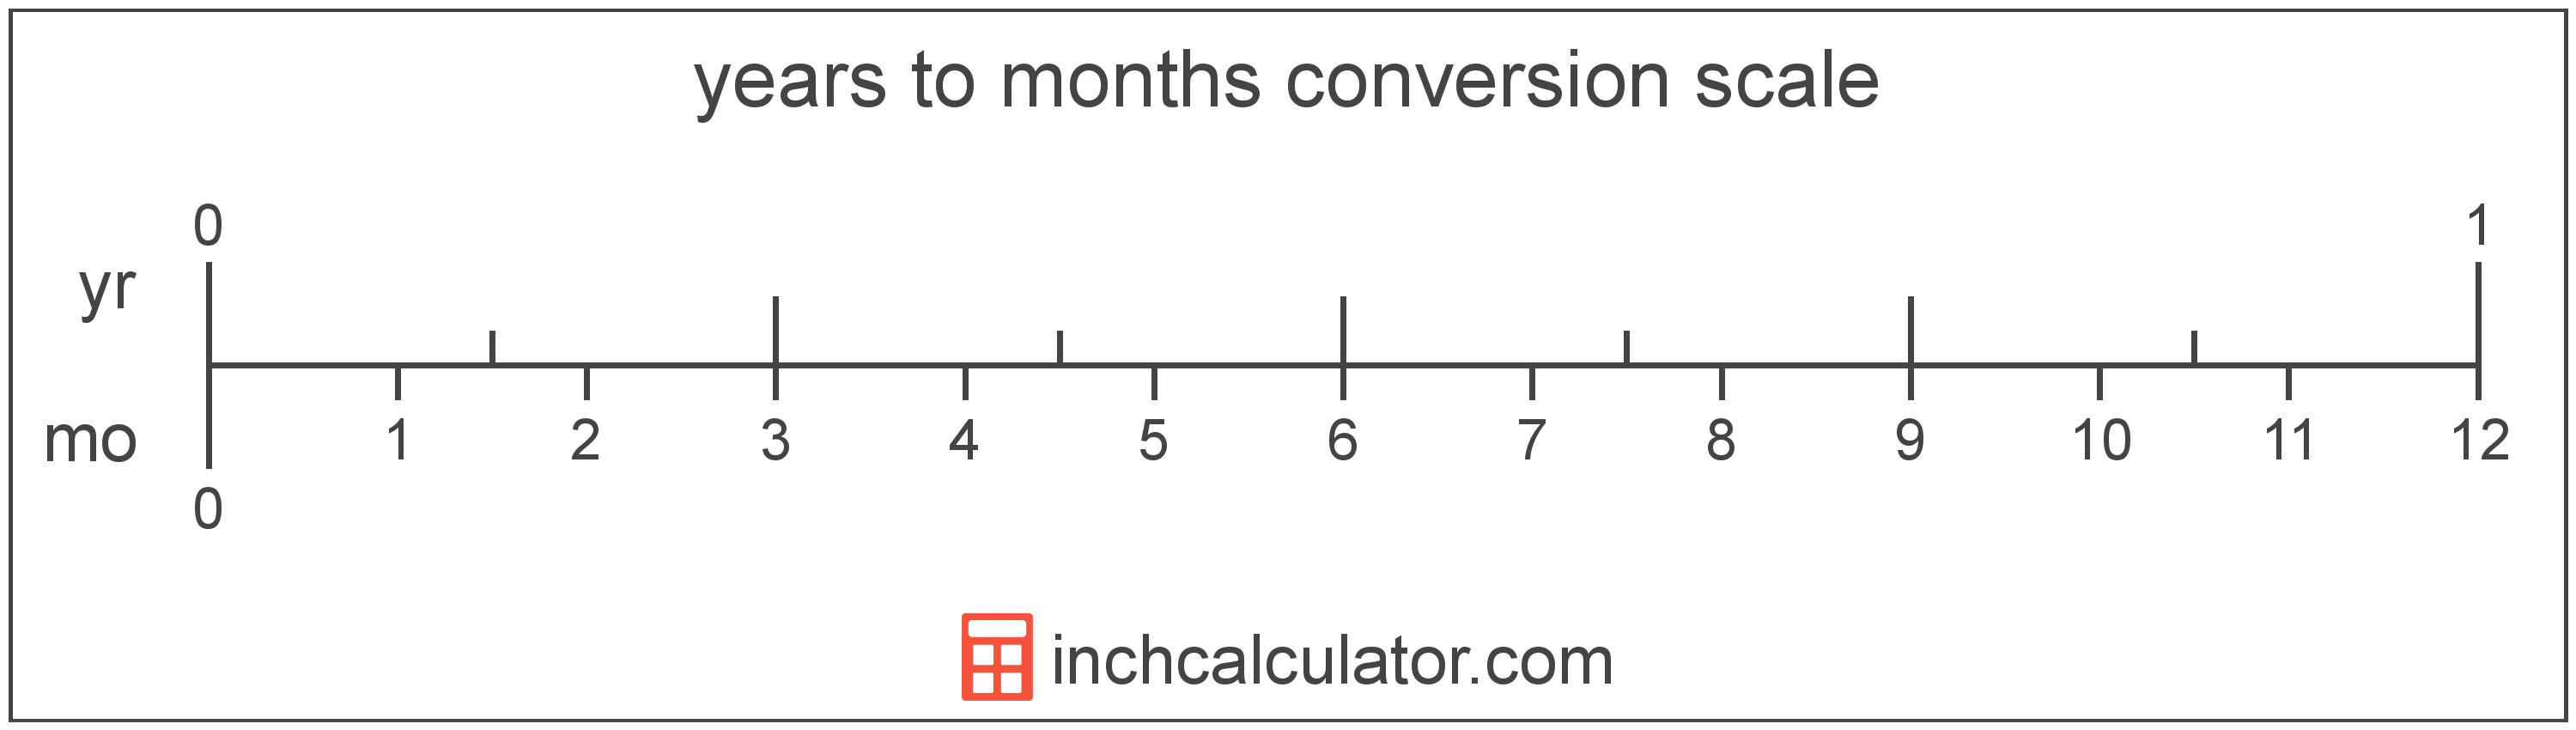 conversion scale showing years and equivalent months time values